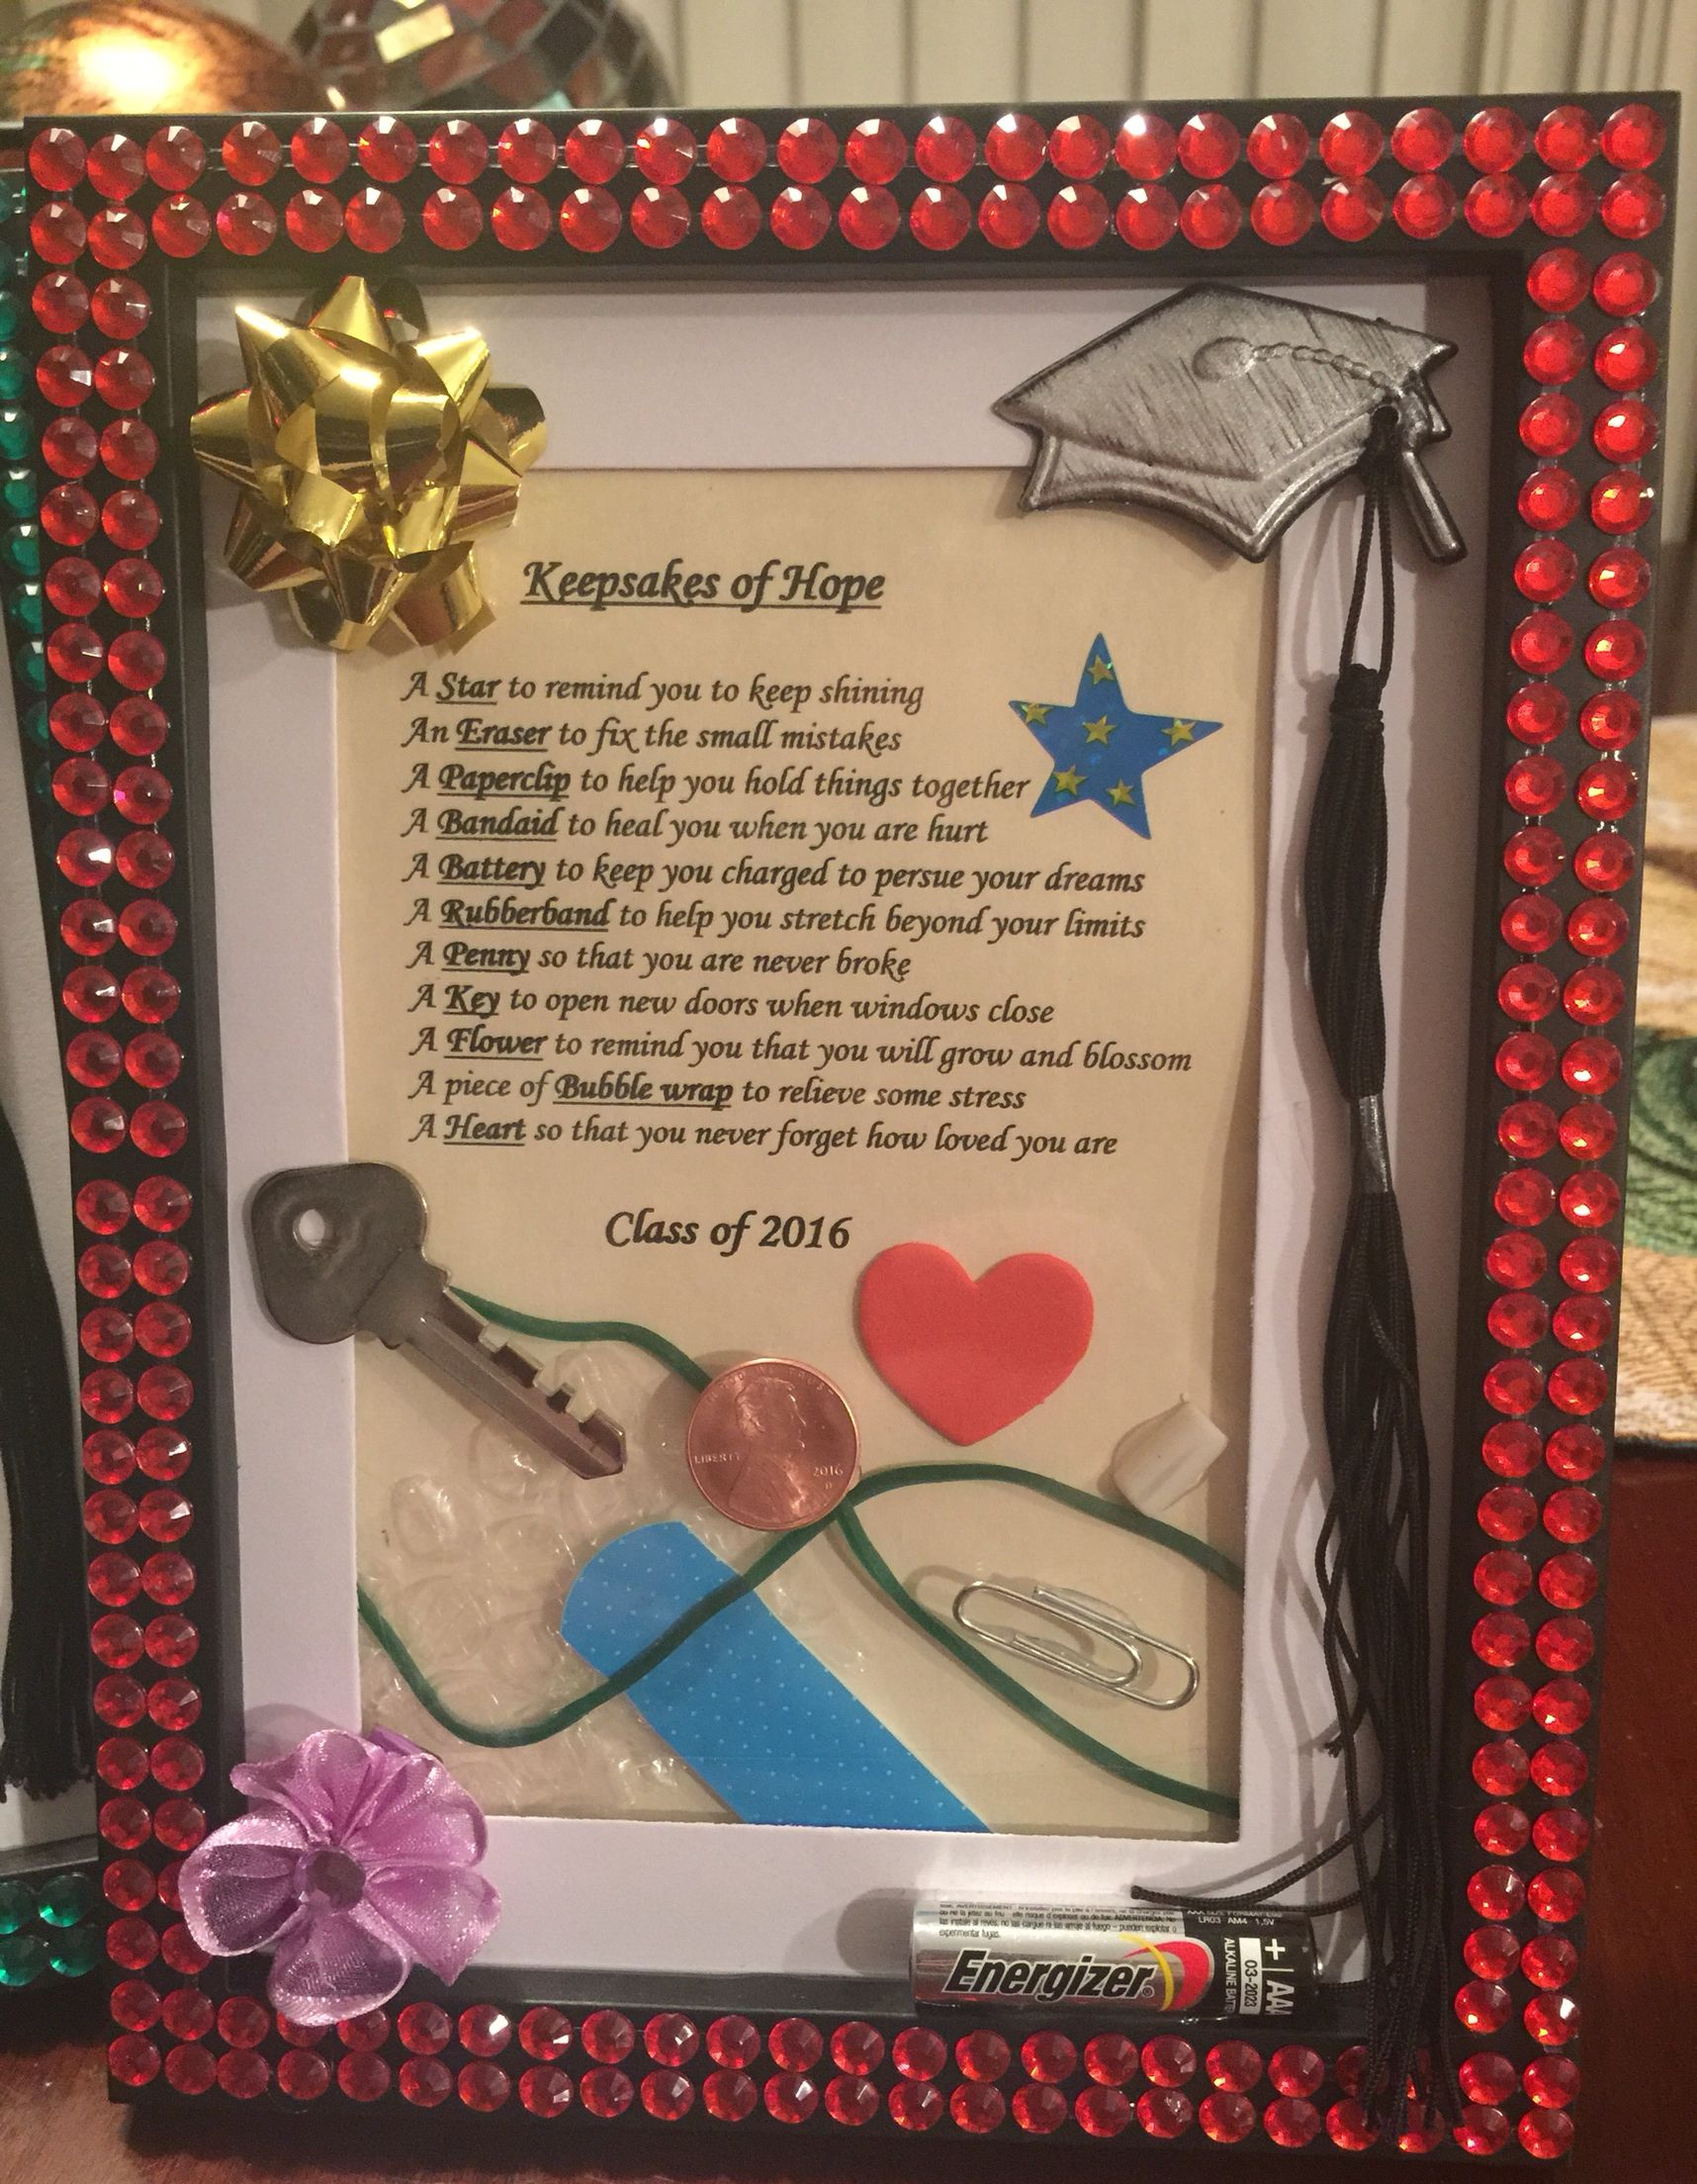 Graduation Gift. Keepsakes of hope! The perfect DIY